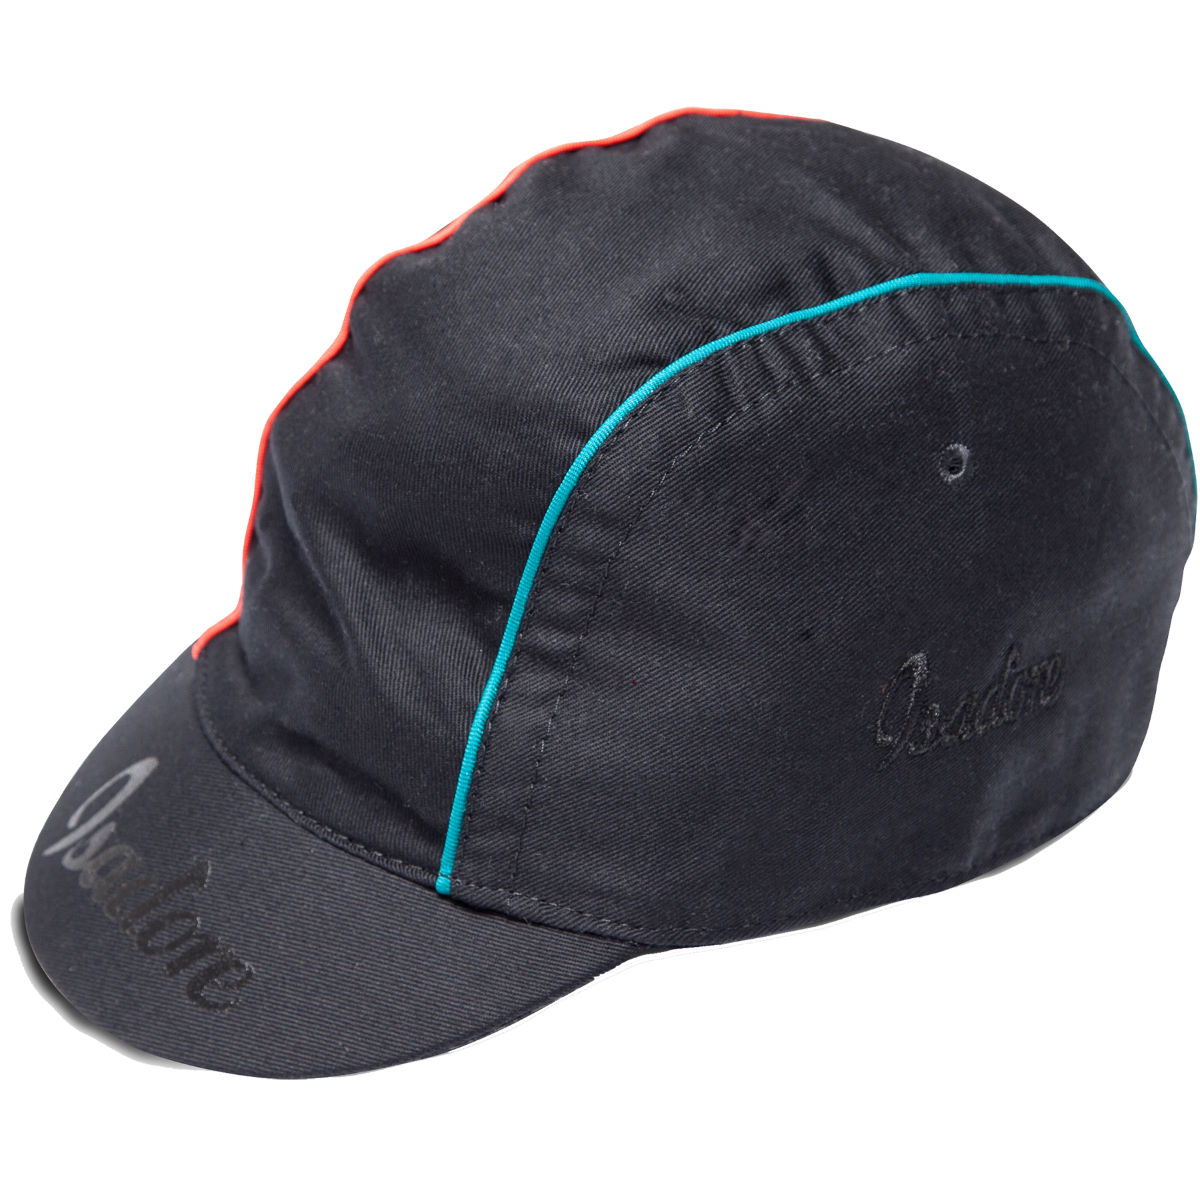 Image of Casquette Isadore Signature Light - M Black/Orange/ Blue | Casquettes